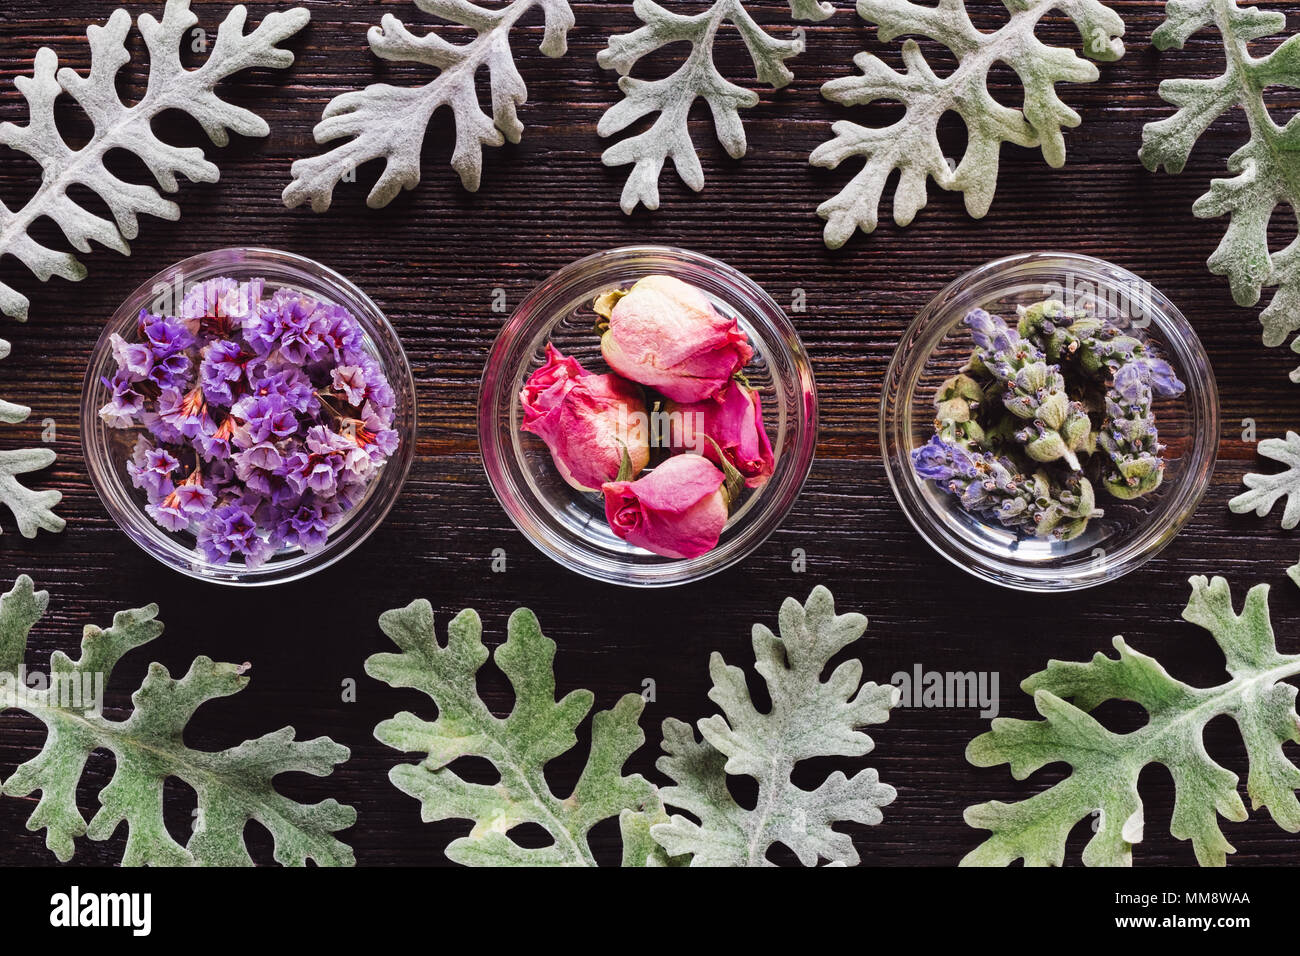 Bowls of Dried Lavender, Rose, and Sea Lavender with Dusty Miller, Aligned and Centered on Dark Table with Space for Copy - Stock Image